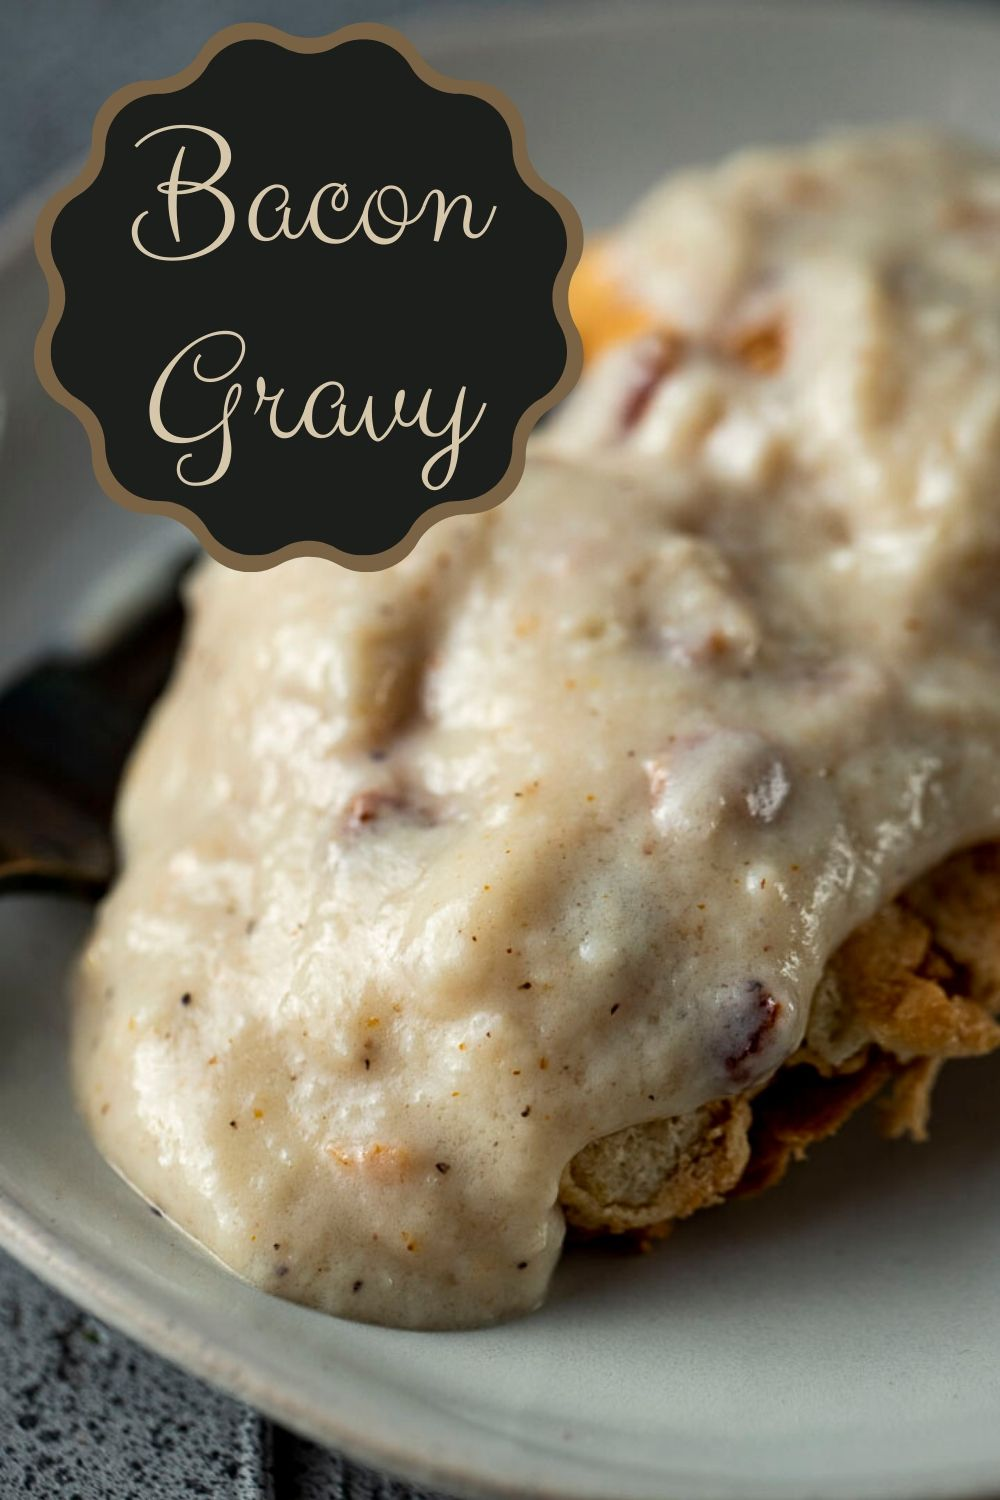 Creamy Bacon Gravy - The Best Cream Gravy Ever!!